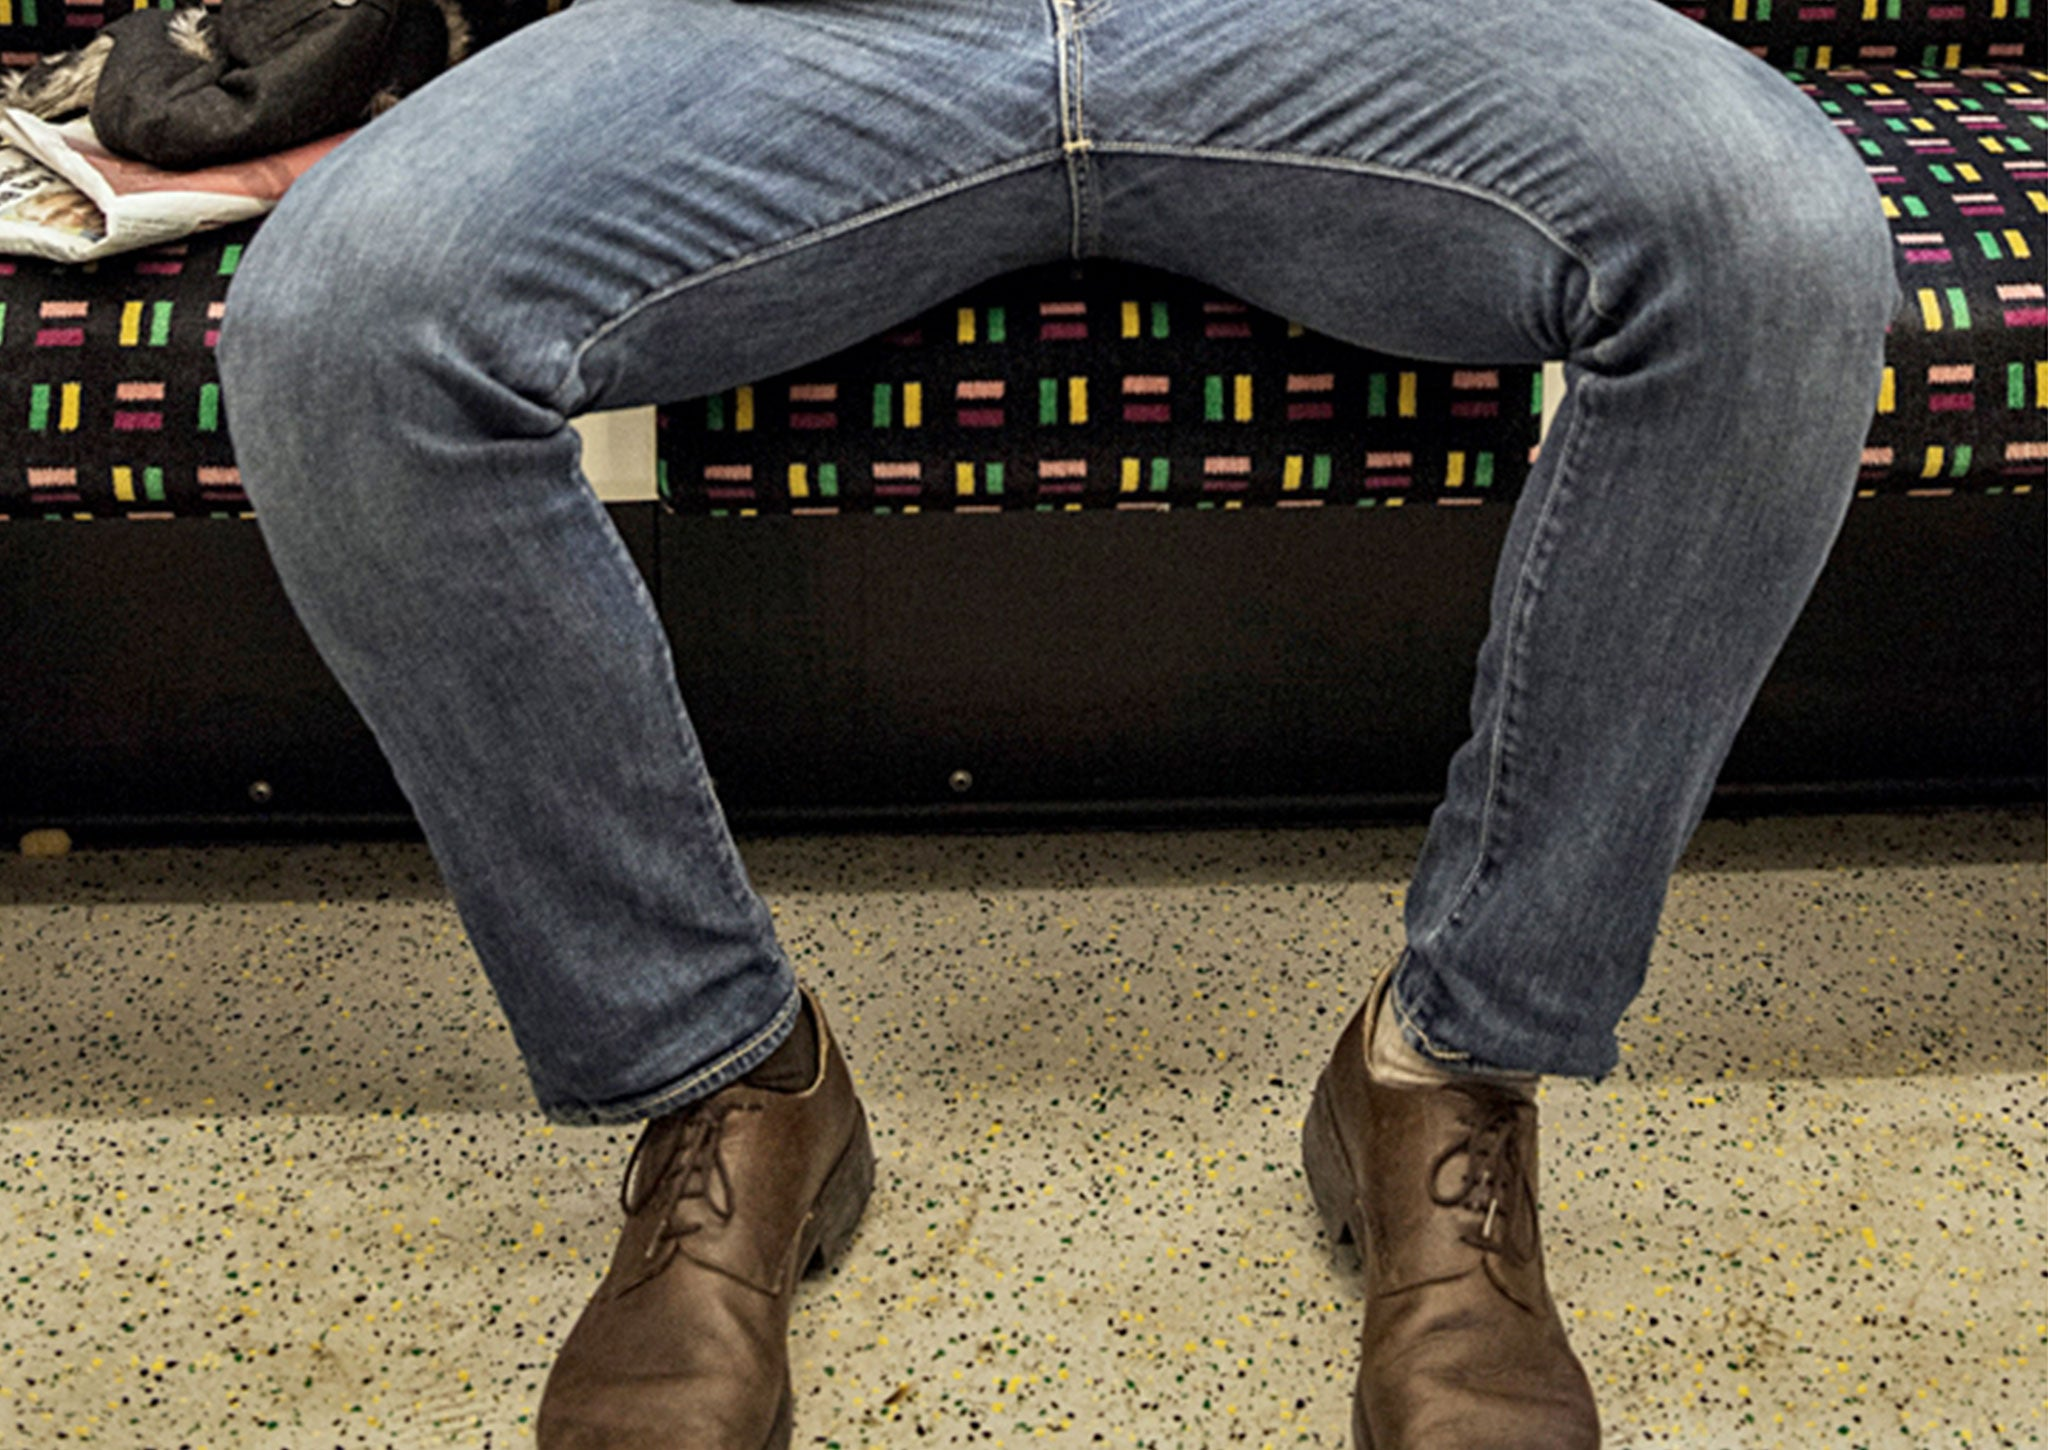 'I need to sit that way because of my balls' — and 5 other misguided defences of 'manspreading' on public transport